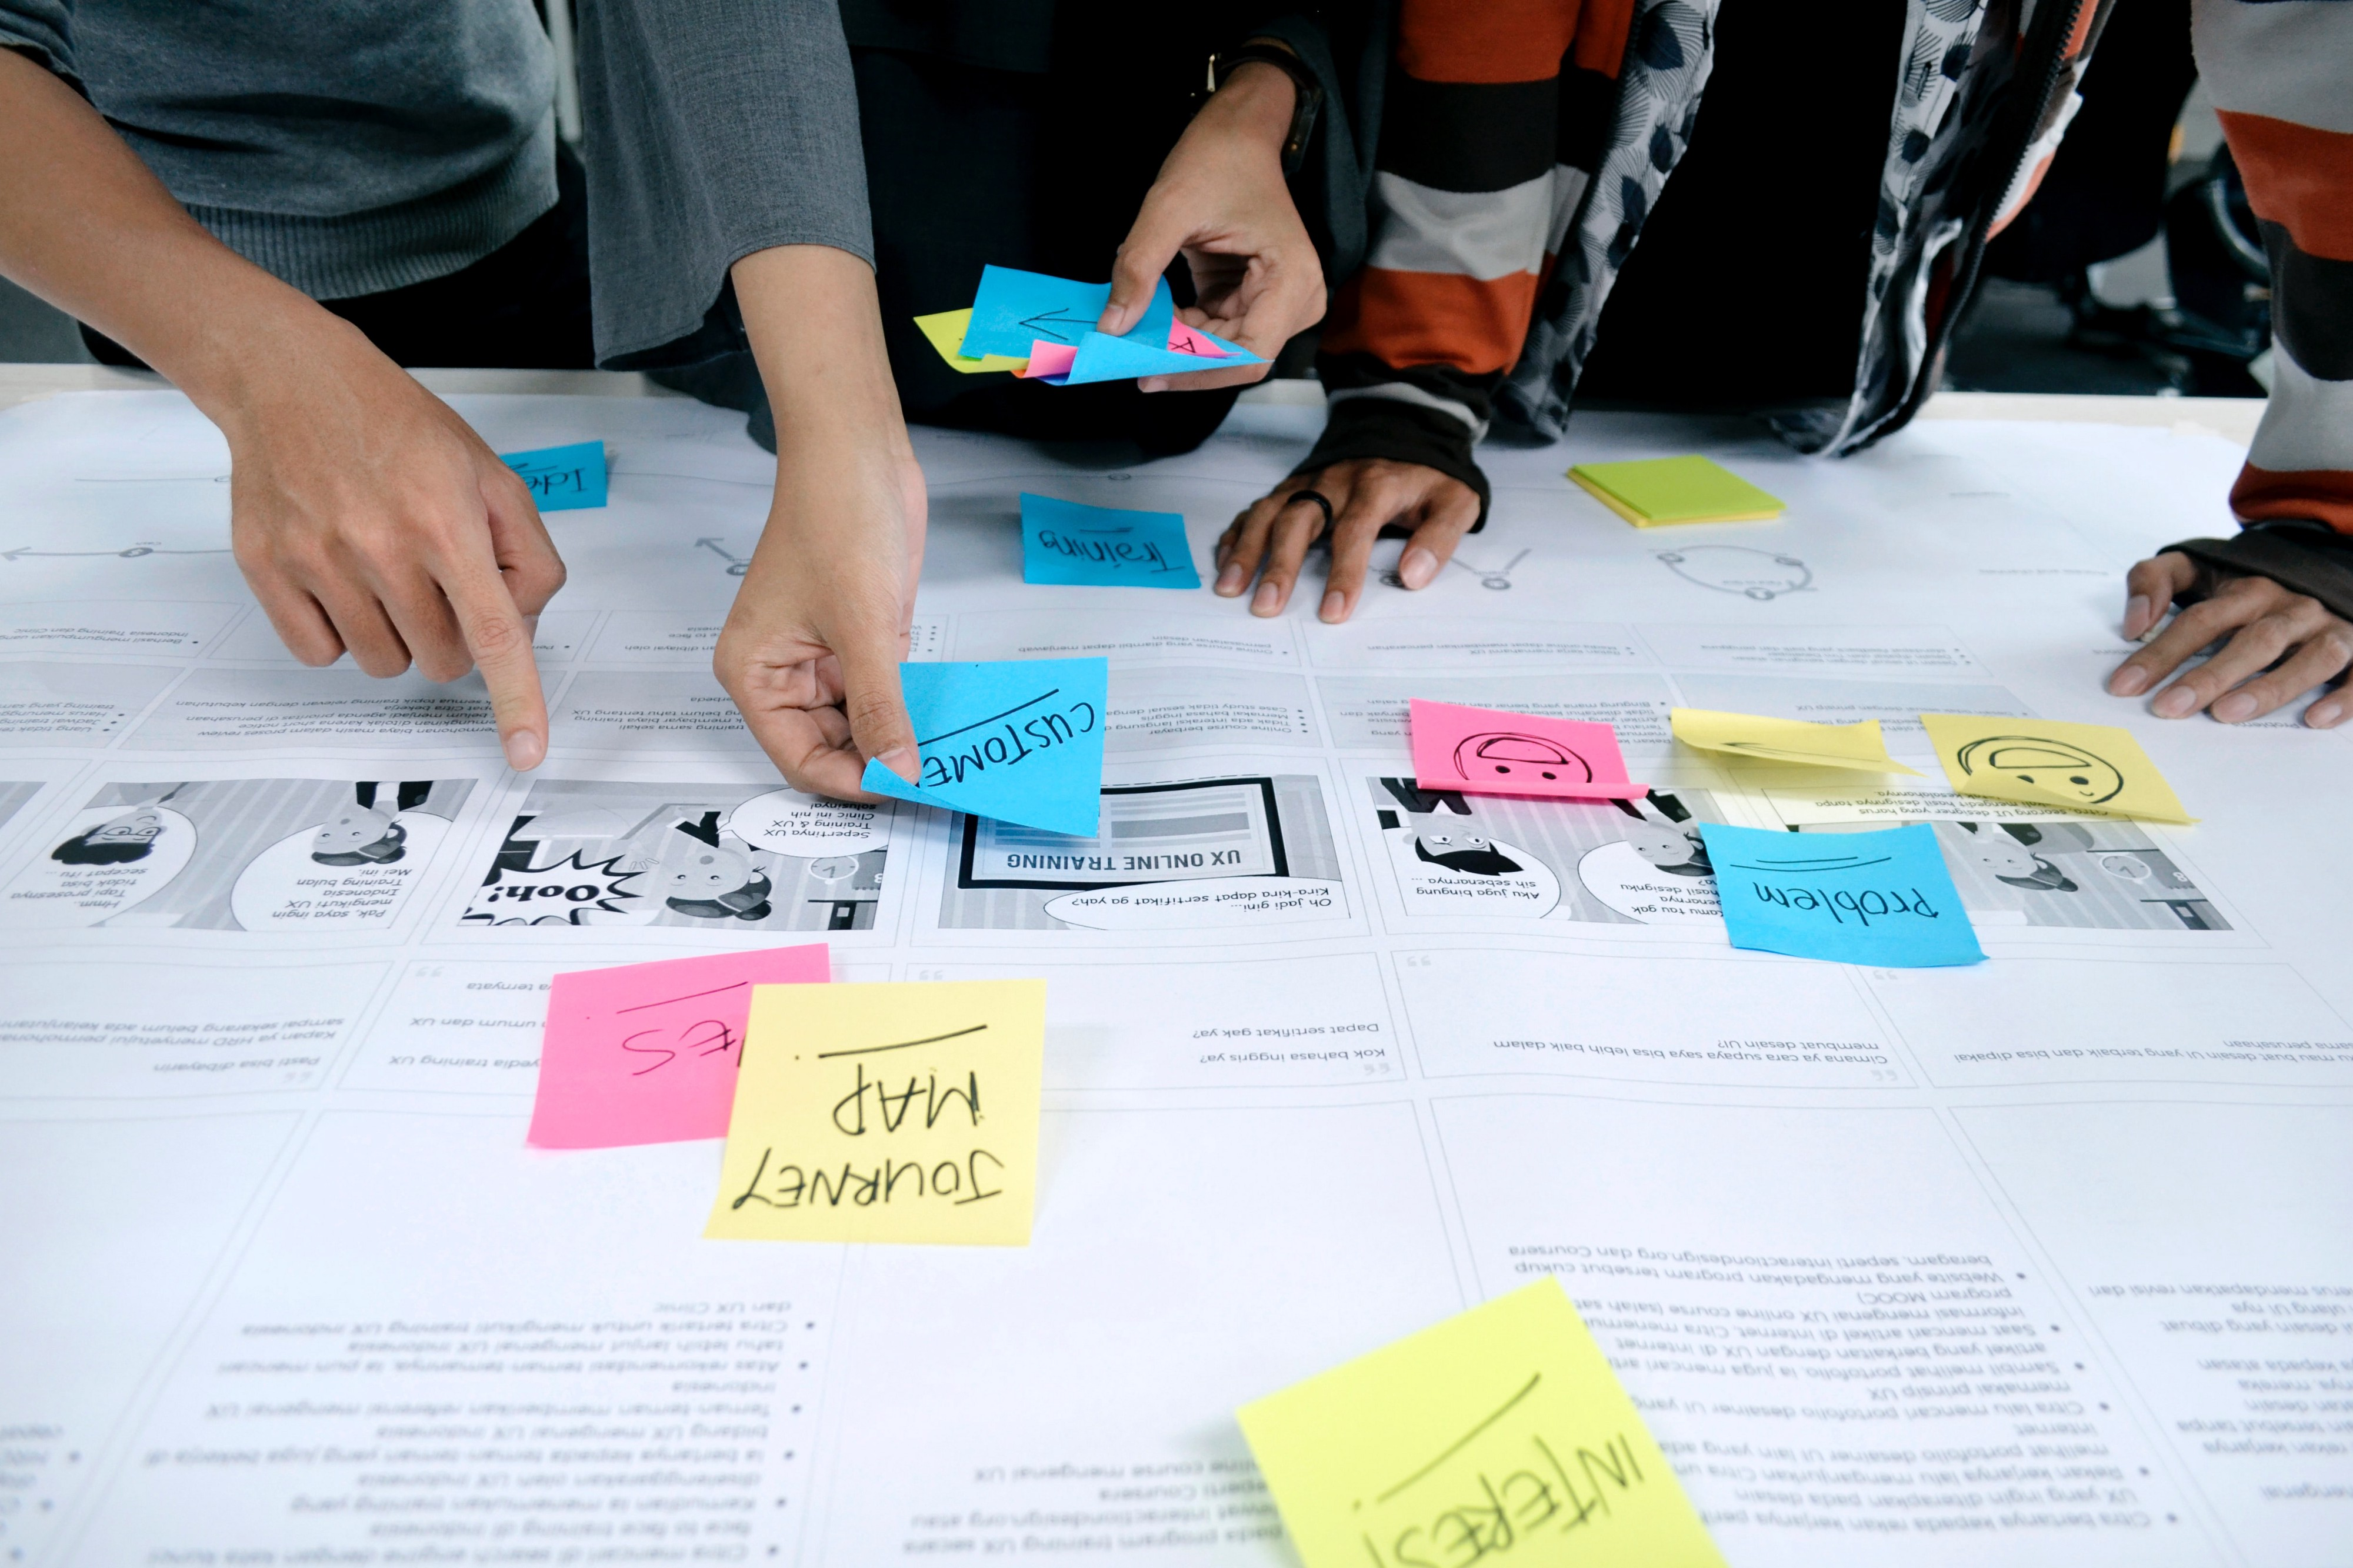 User Journey Map is also known as Customer Journey Map is a a visualization of the process